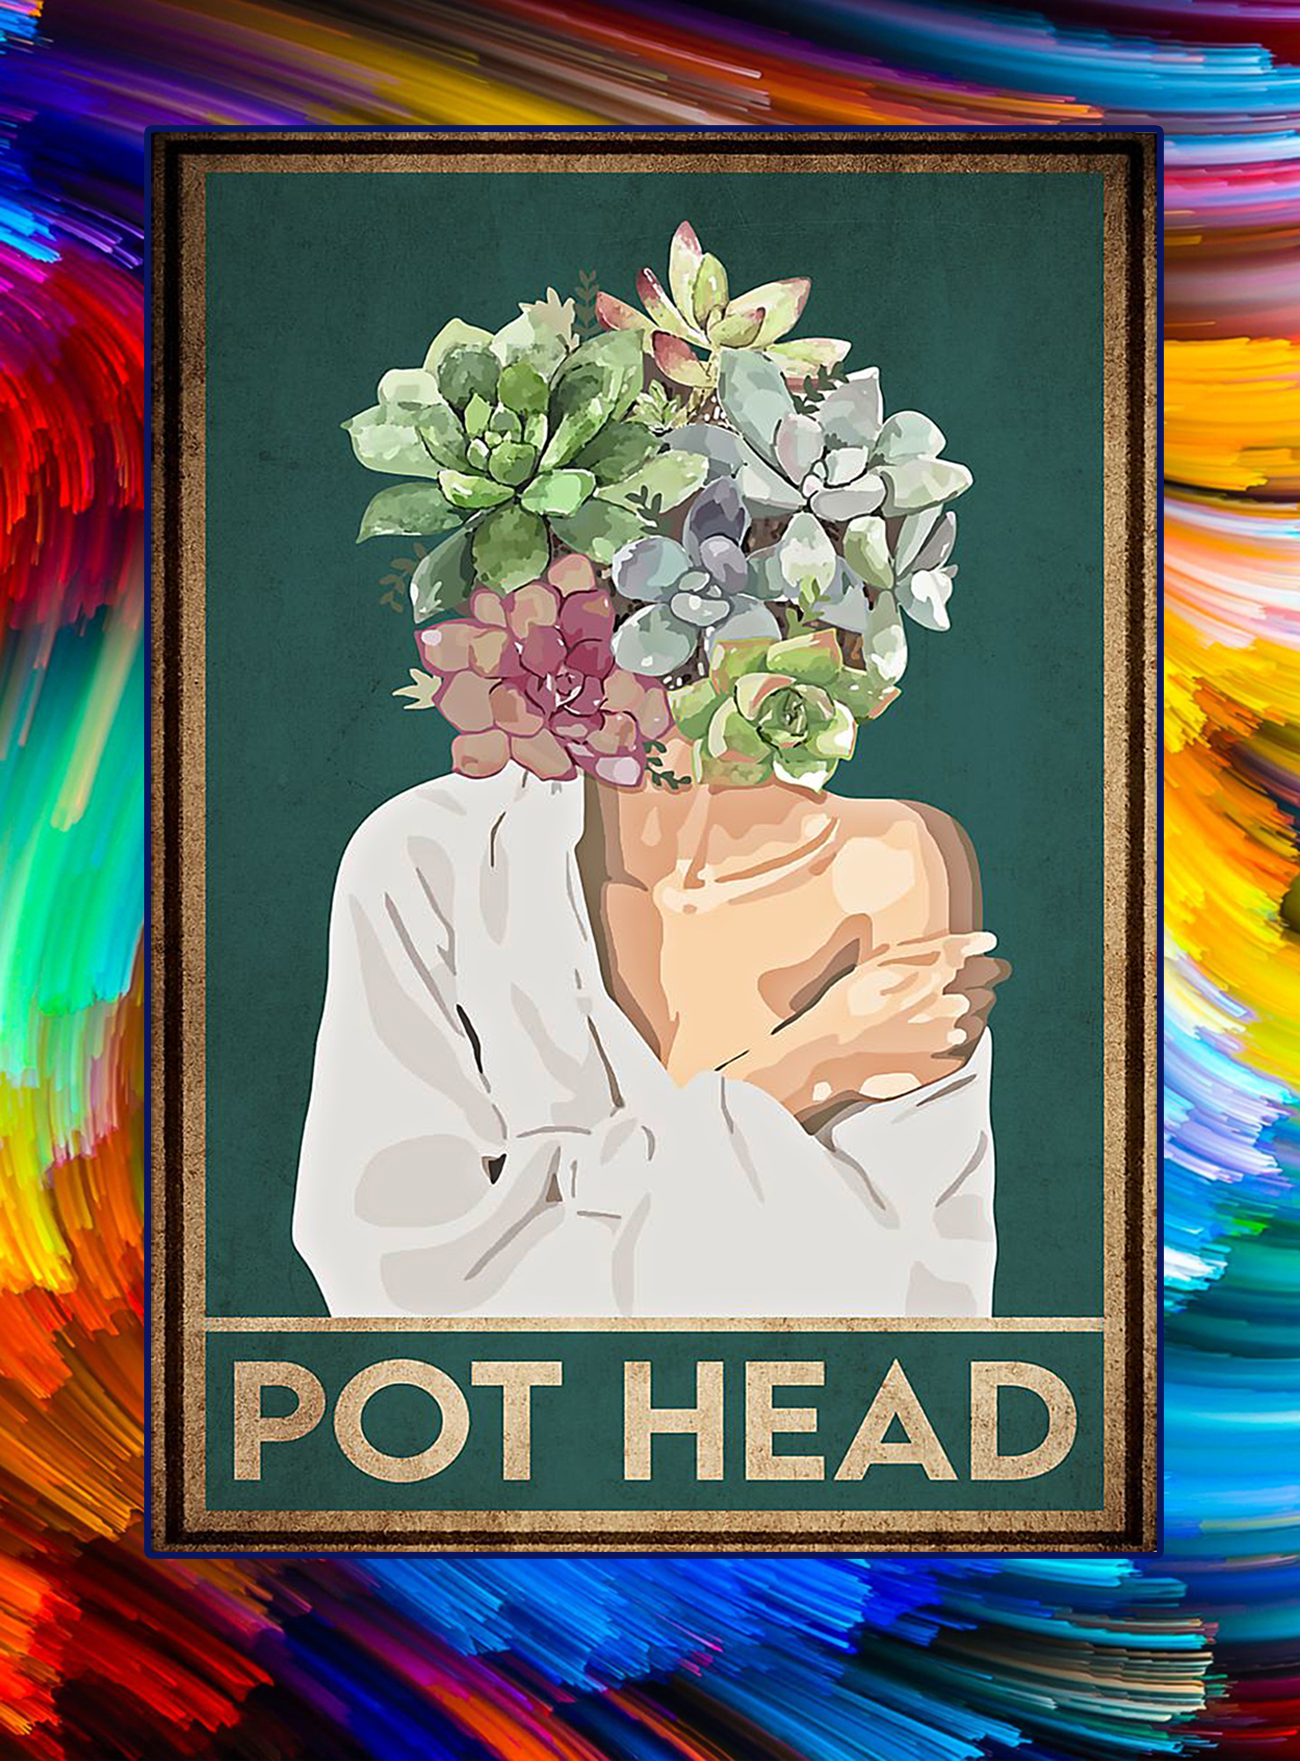 Garden flower pot head poster - A1